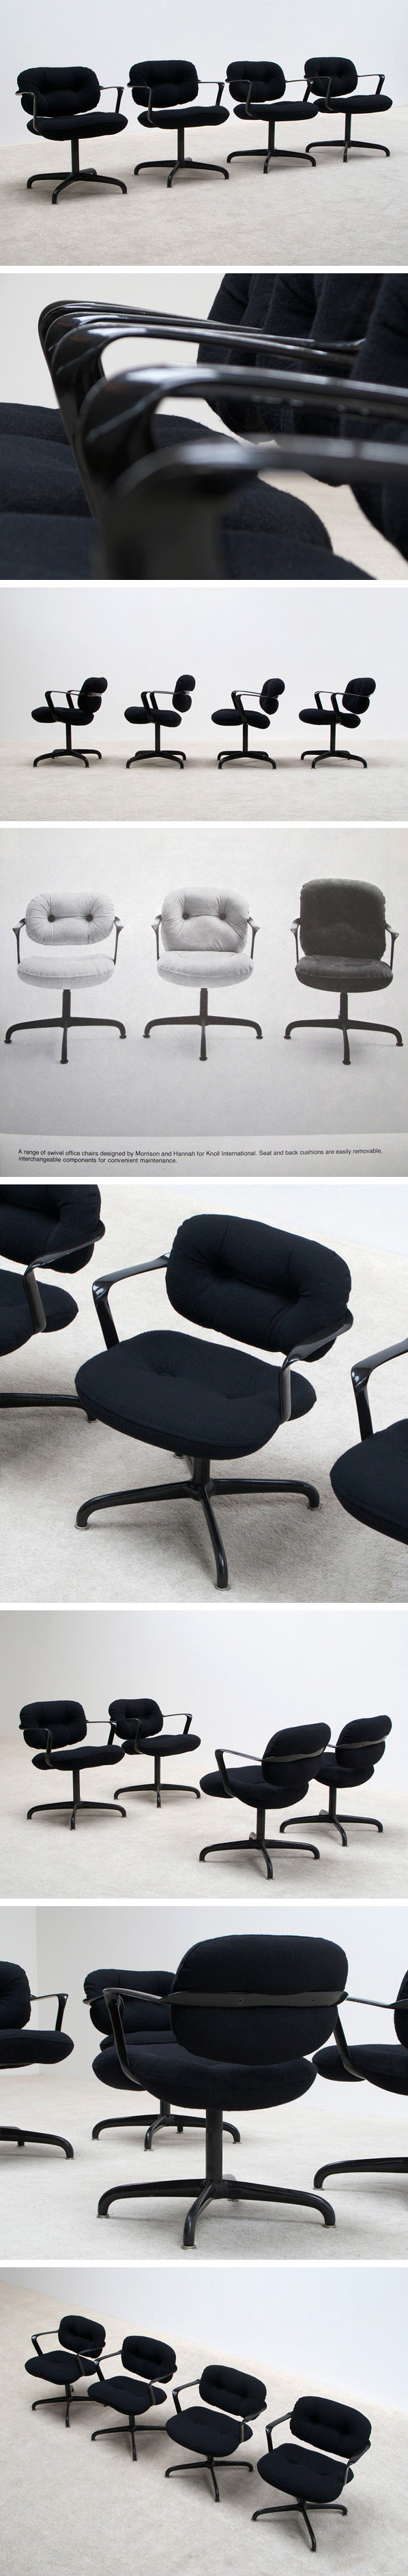 4 chairs model 2338 by Morrison and Hannah for Knoll International Large